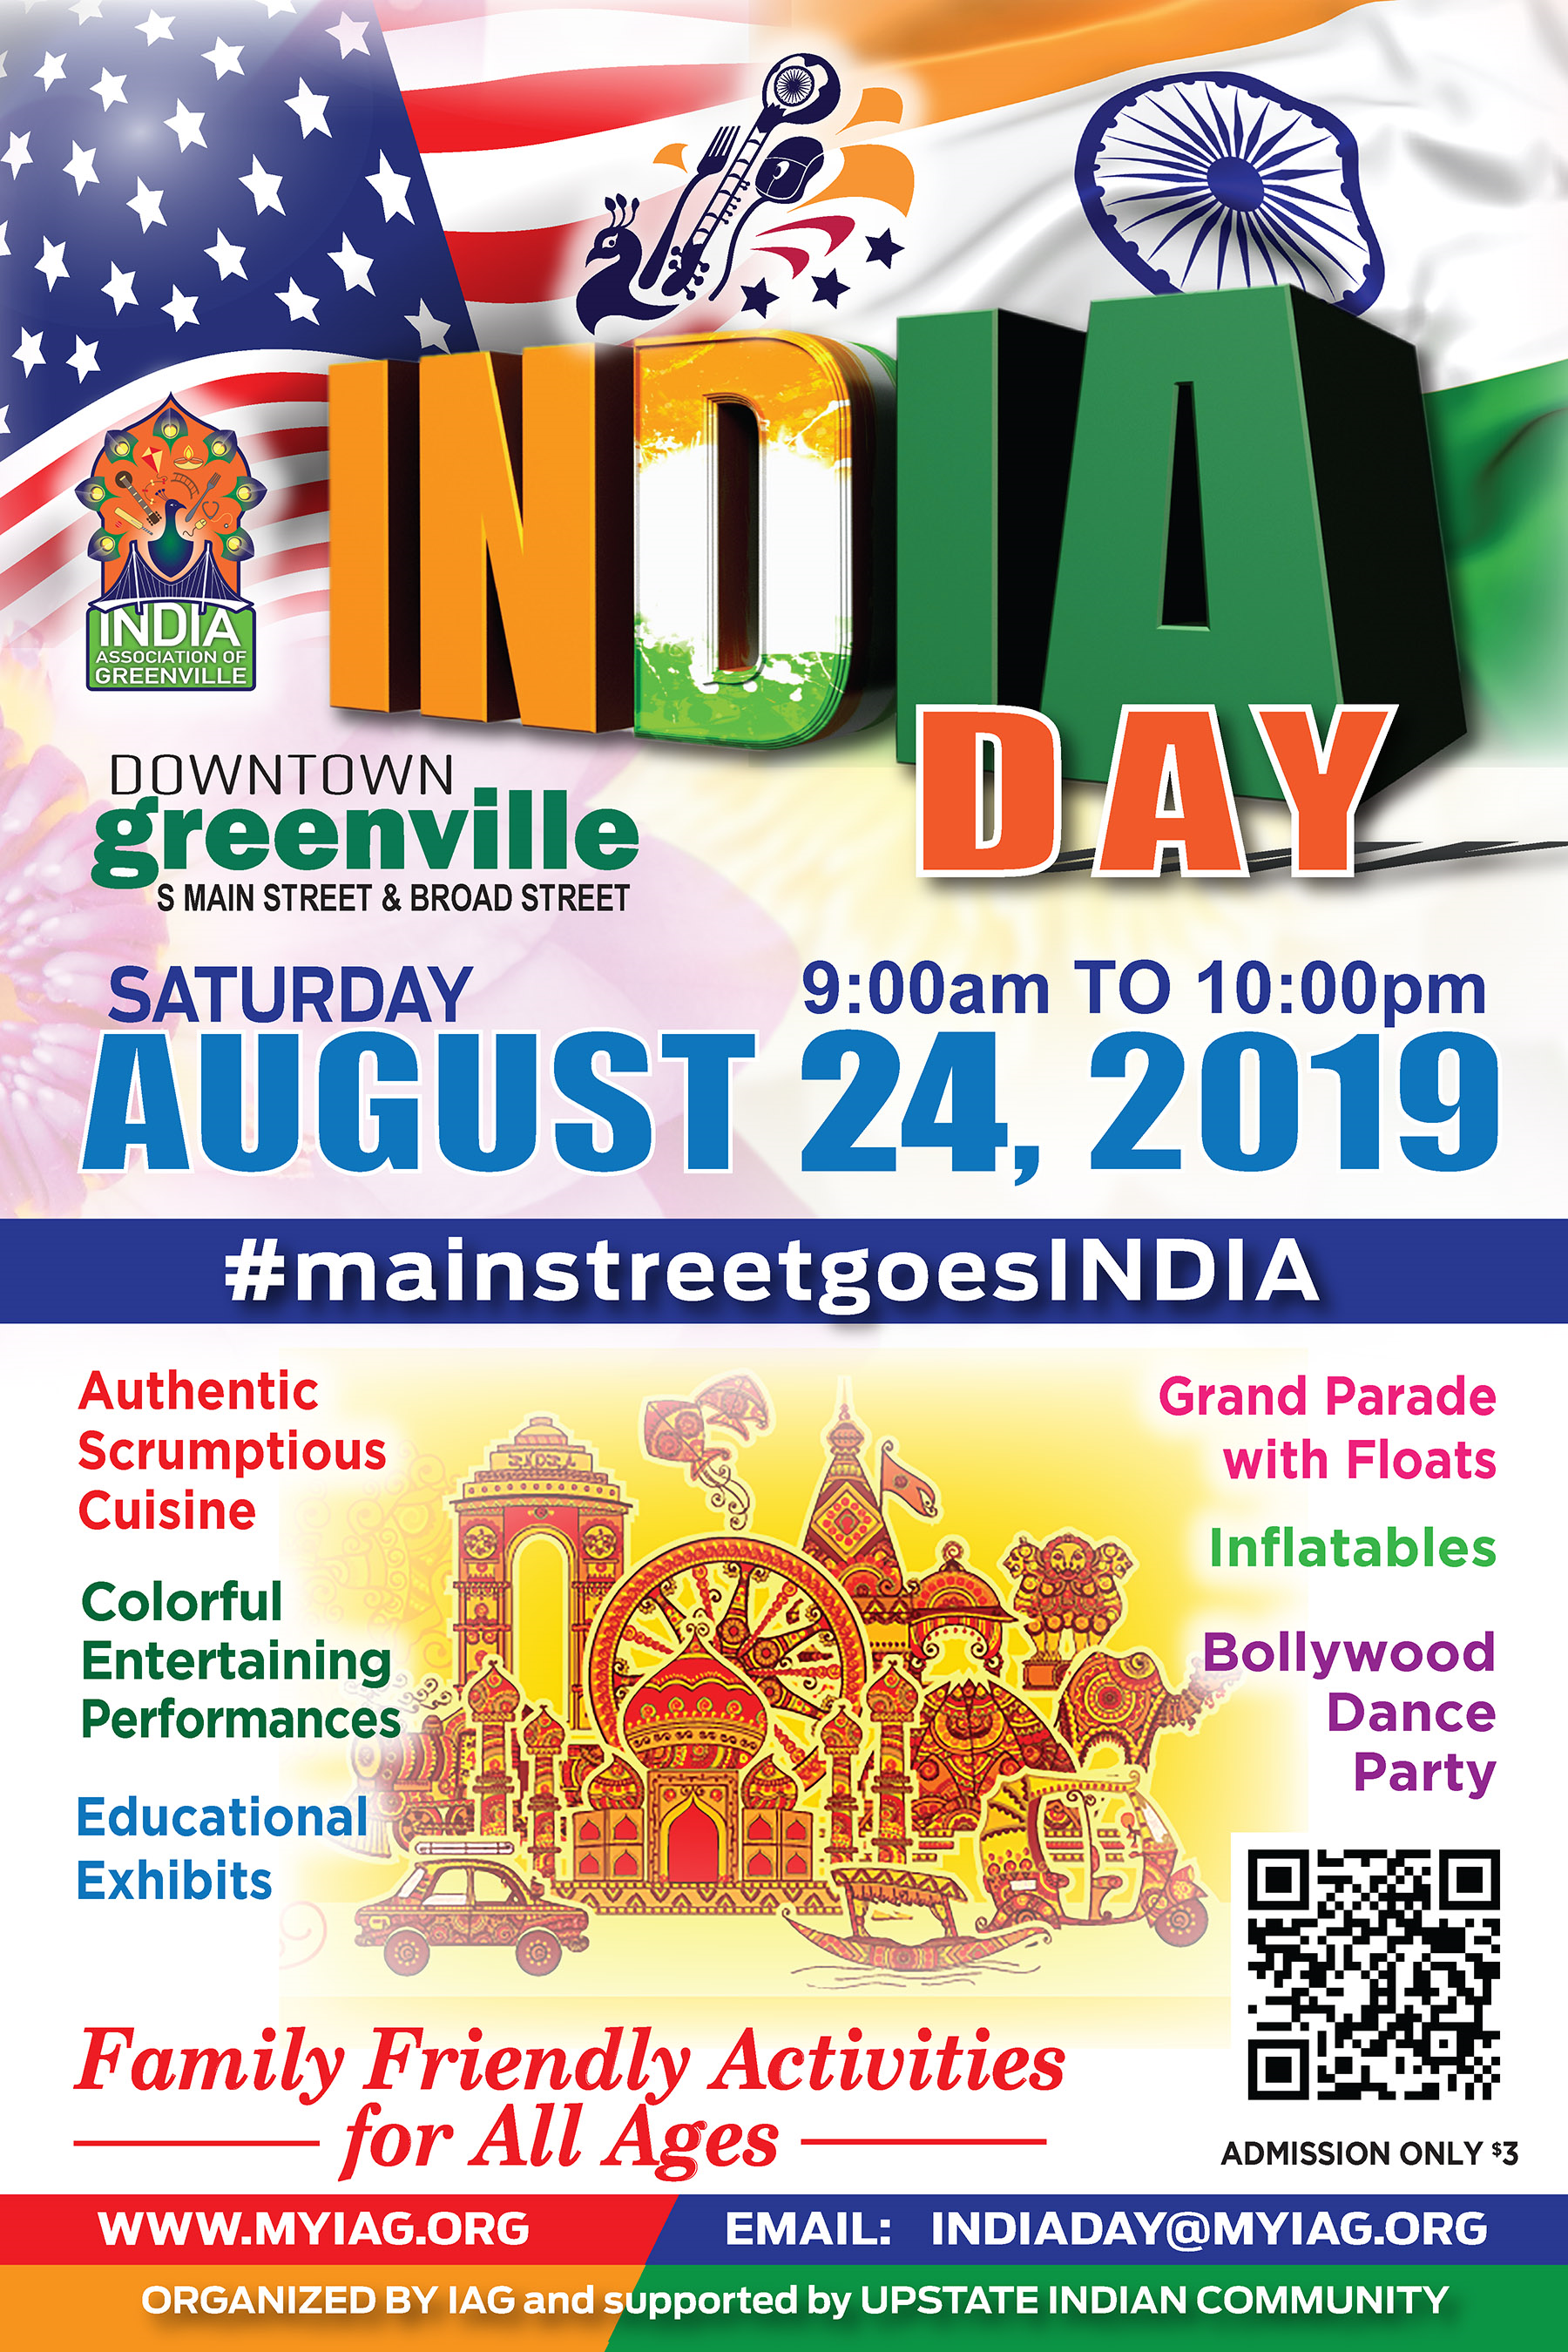 India Day @ Main Street and Broad Street